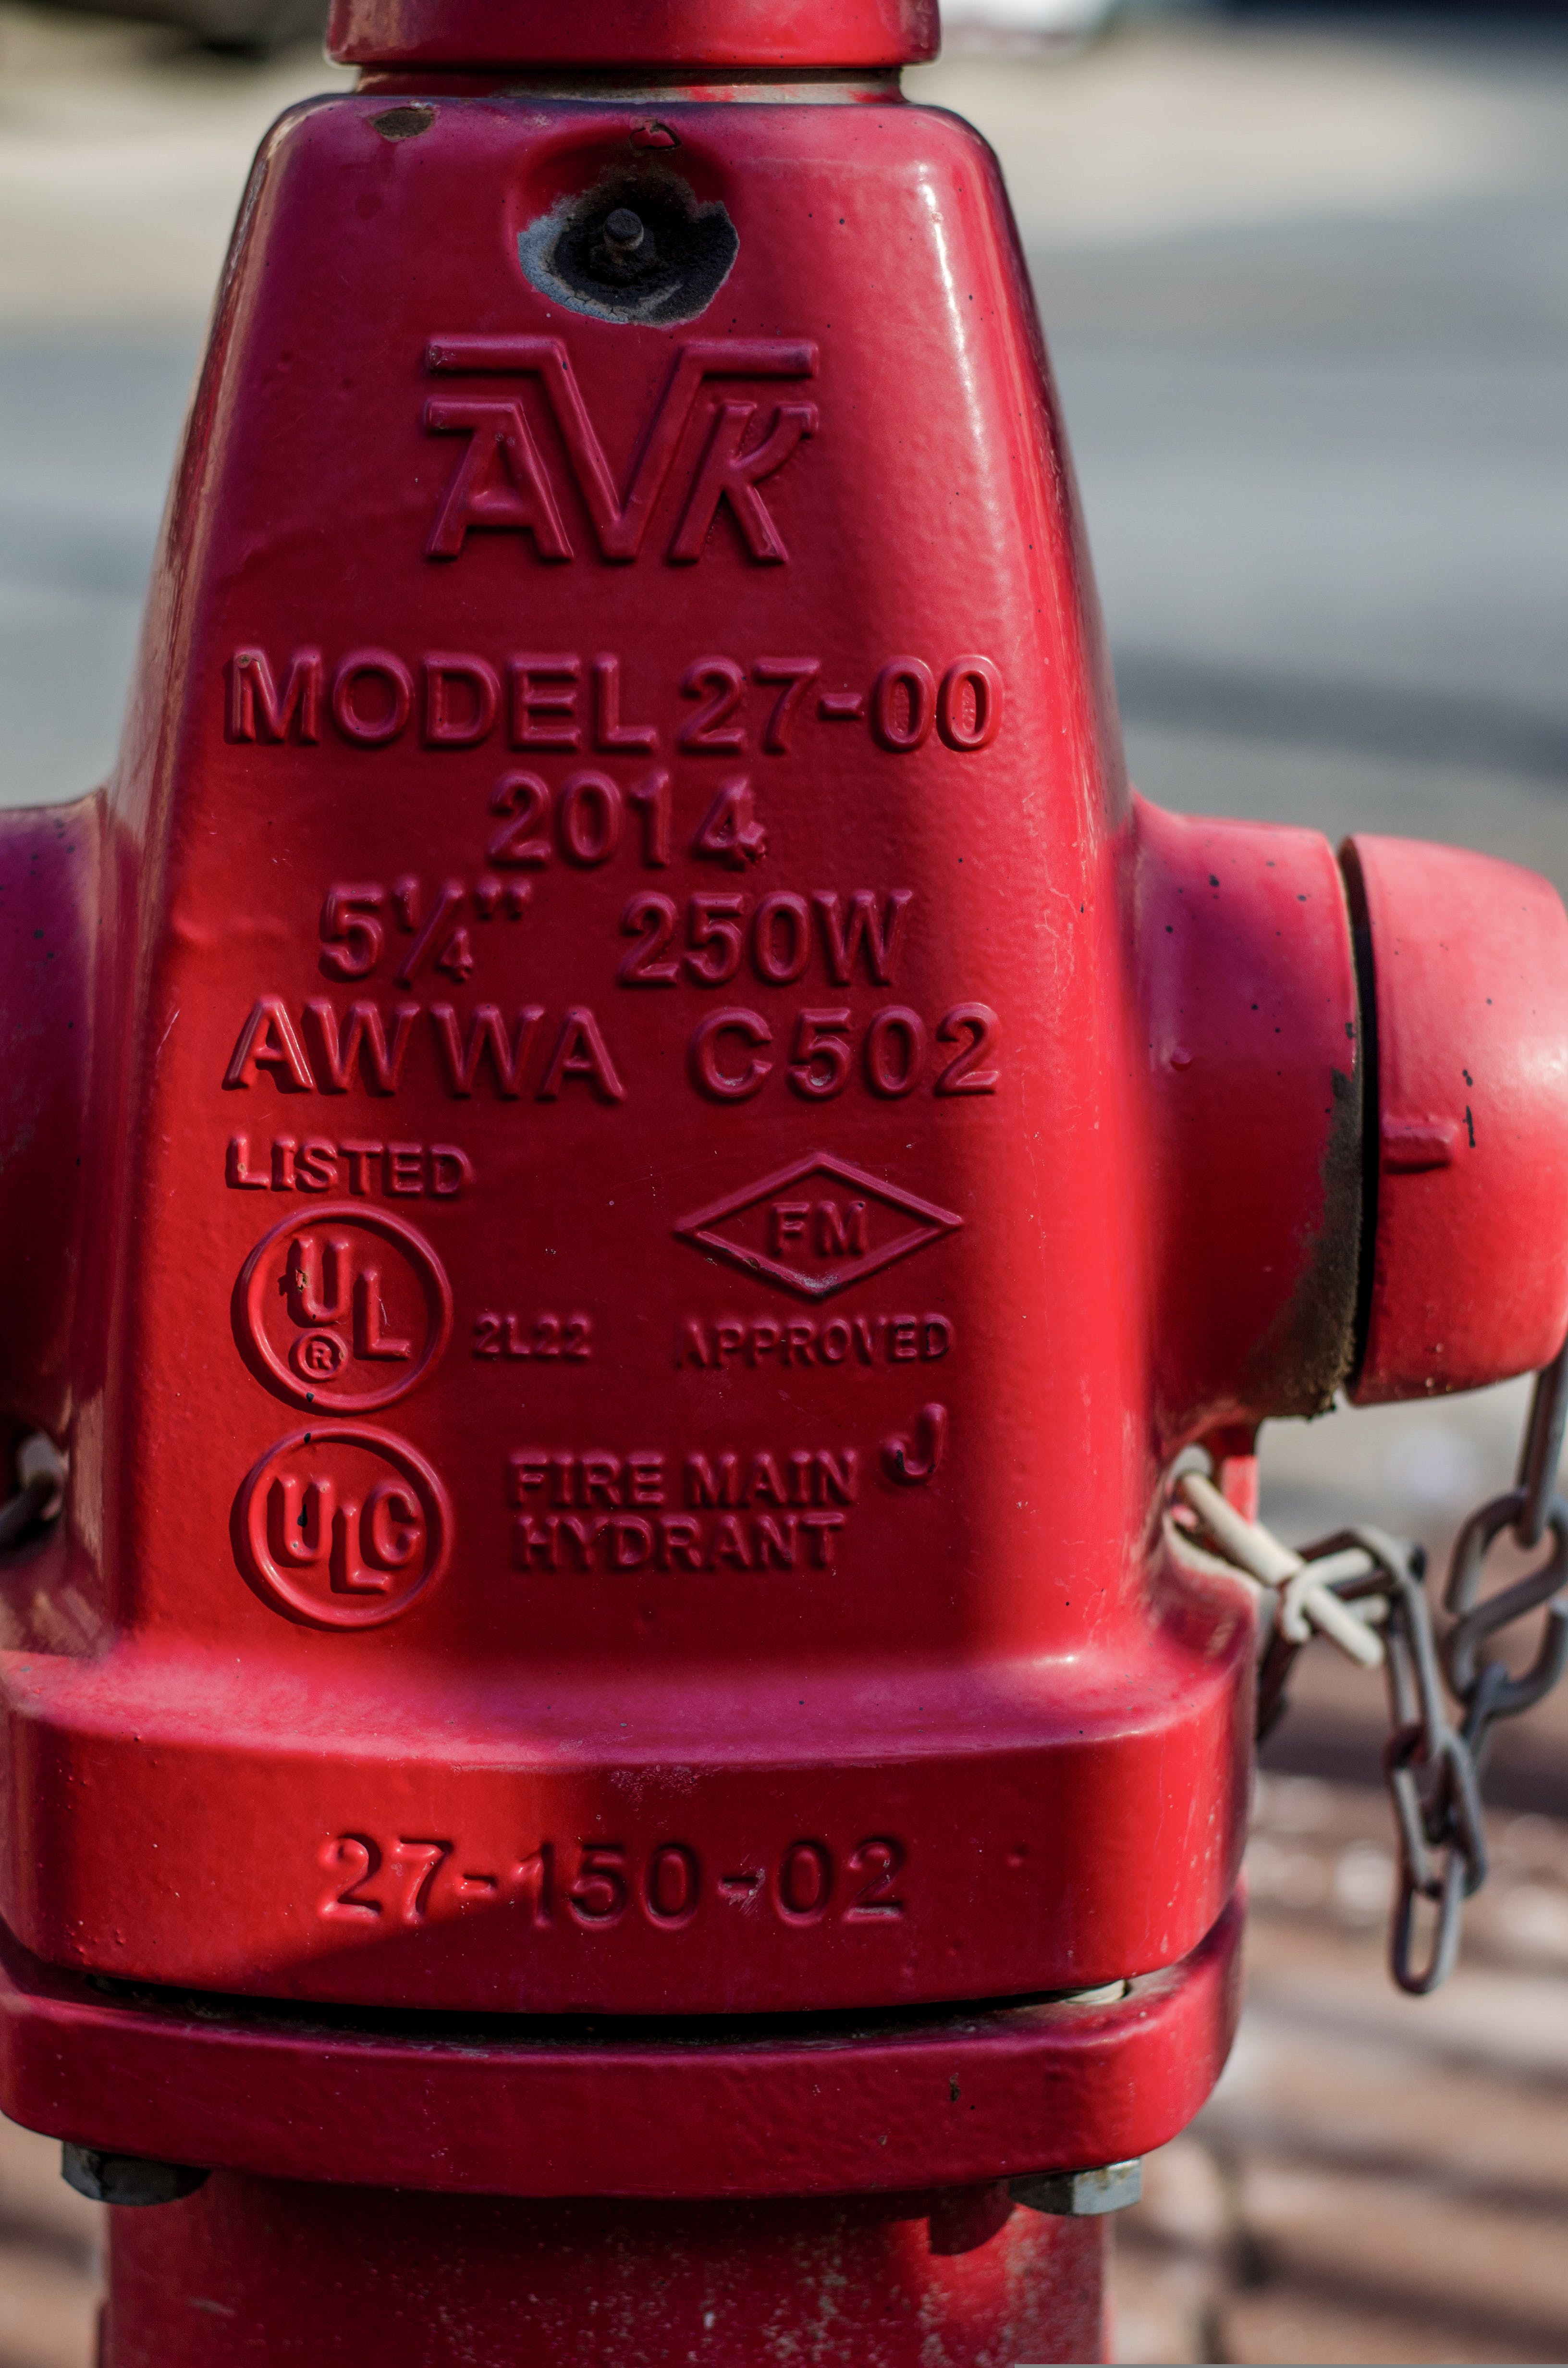 Free stock photo of fire hydrant, model, red